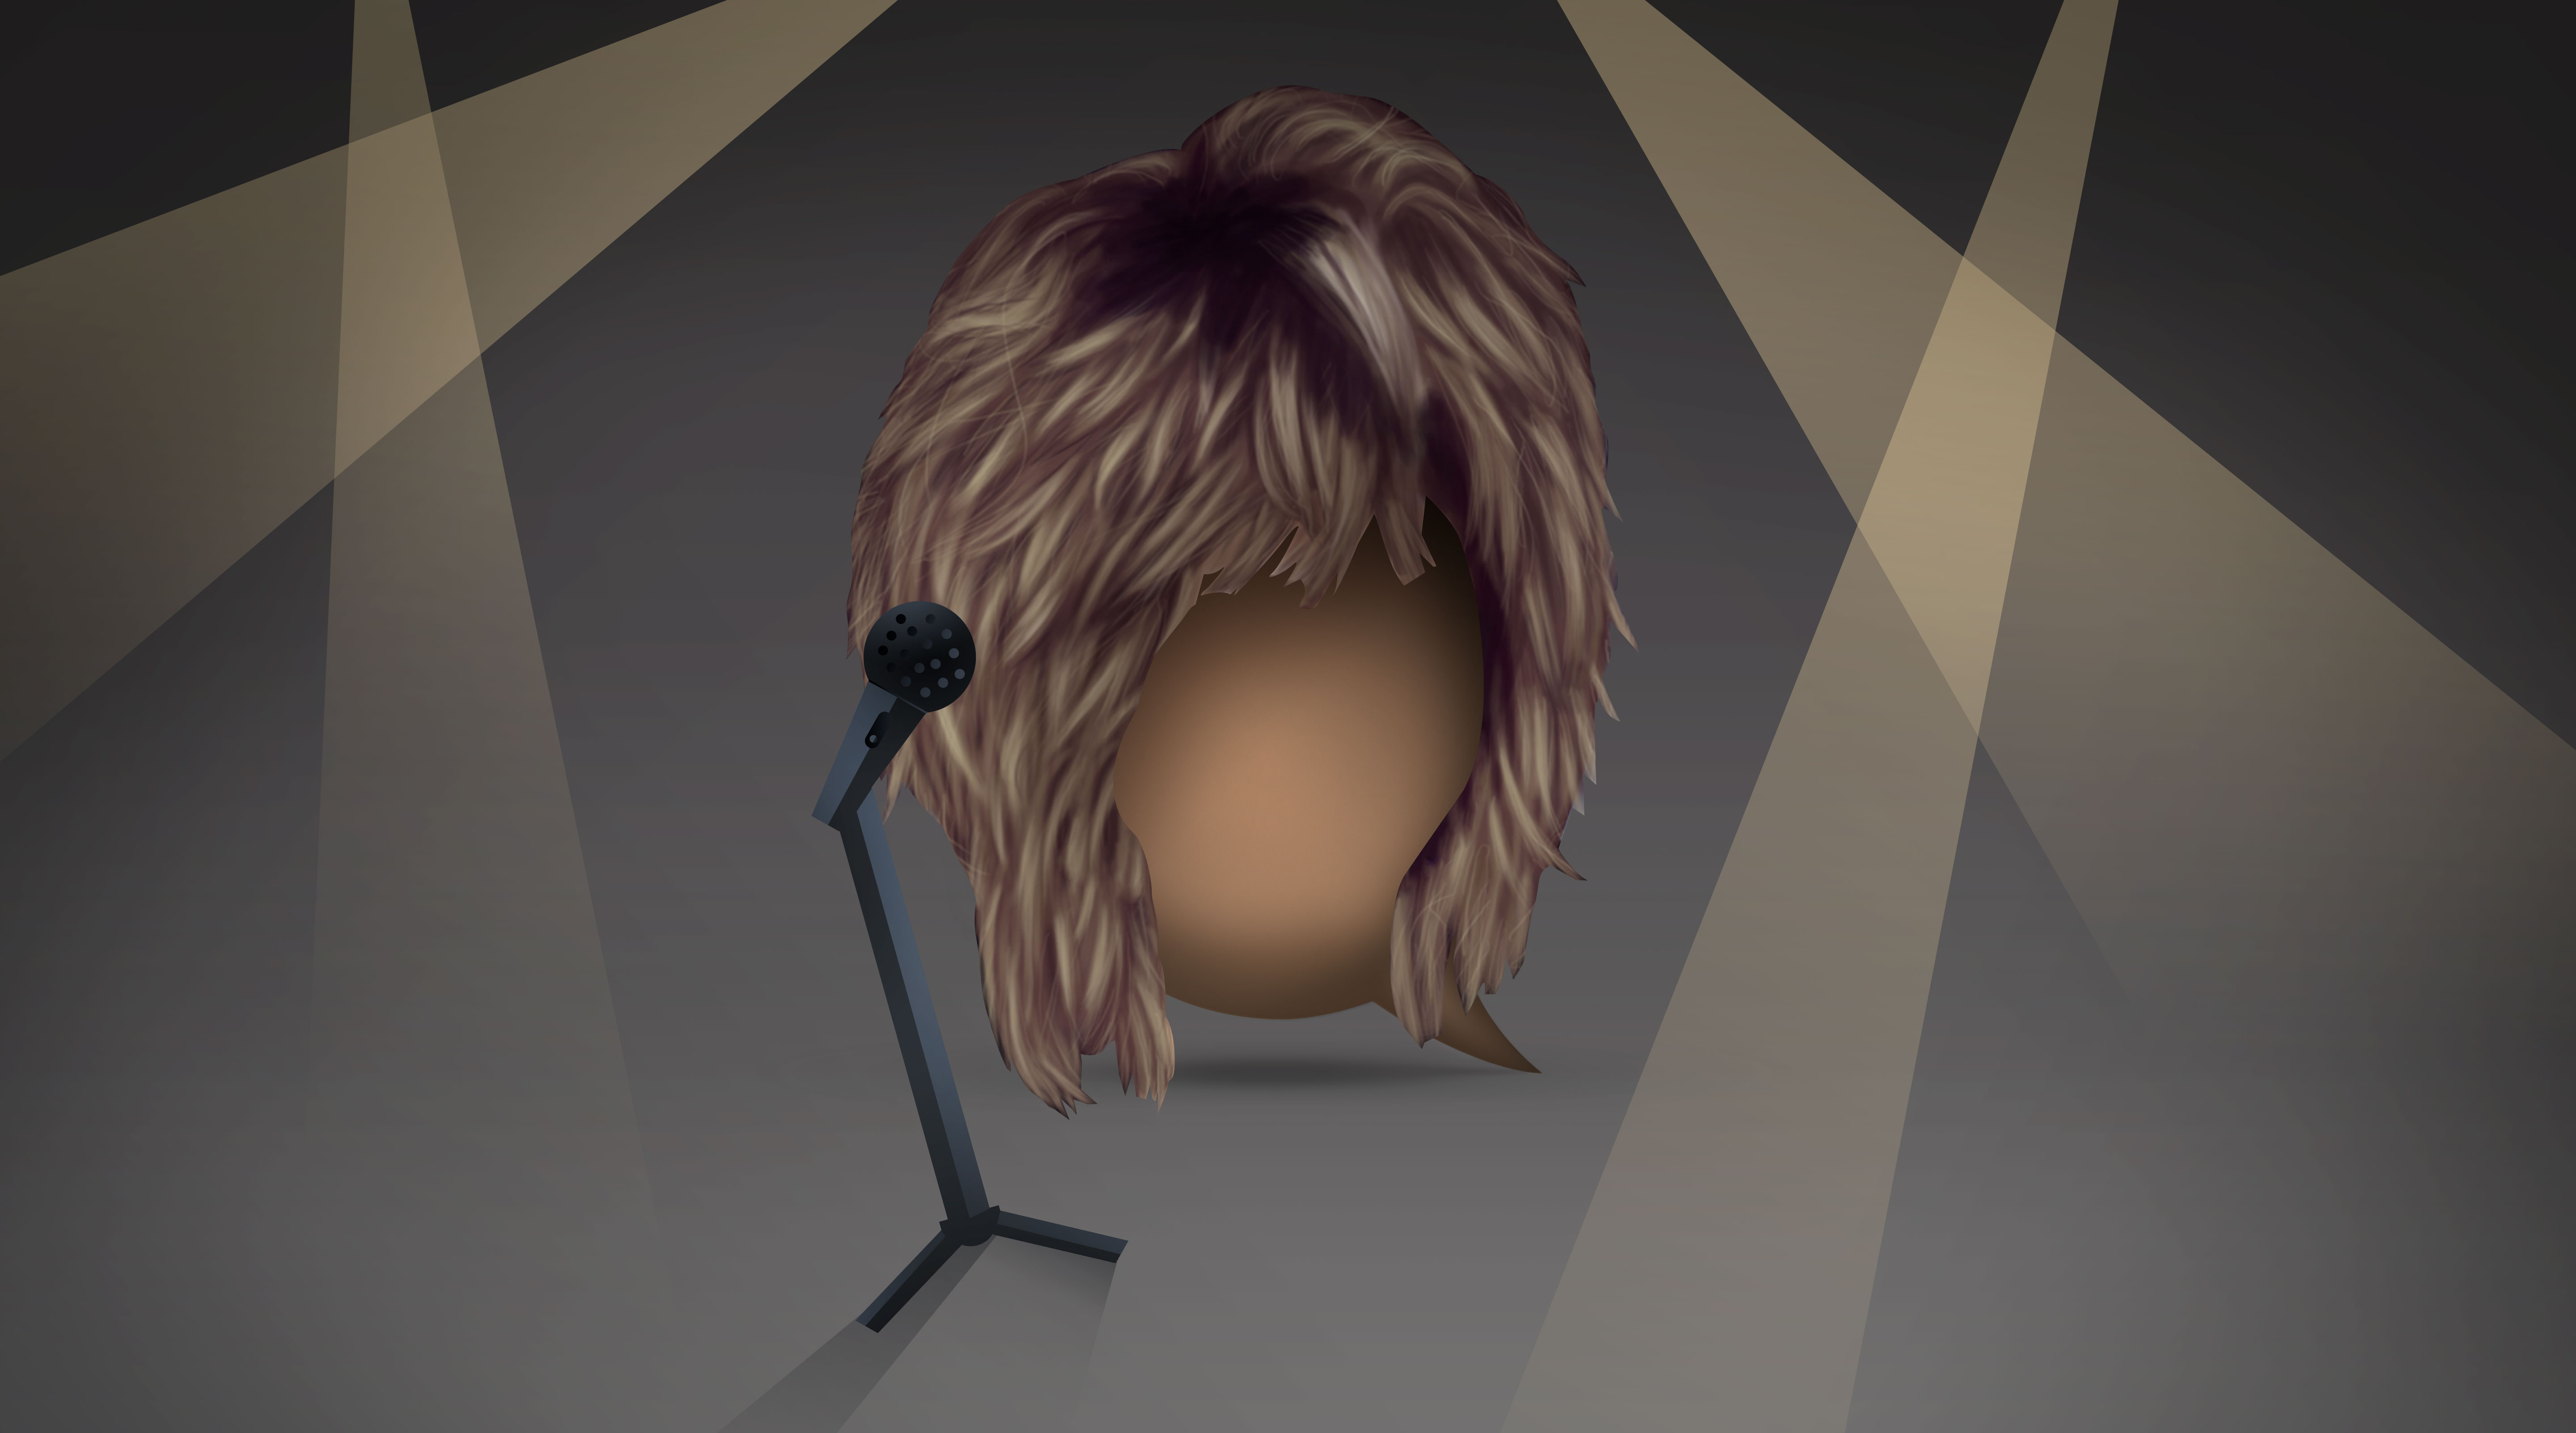 Happy Birthday Tina Turner!